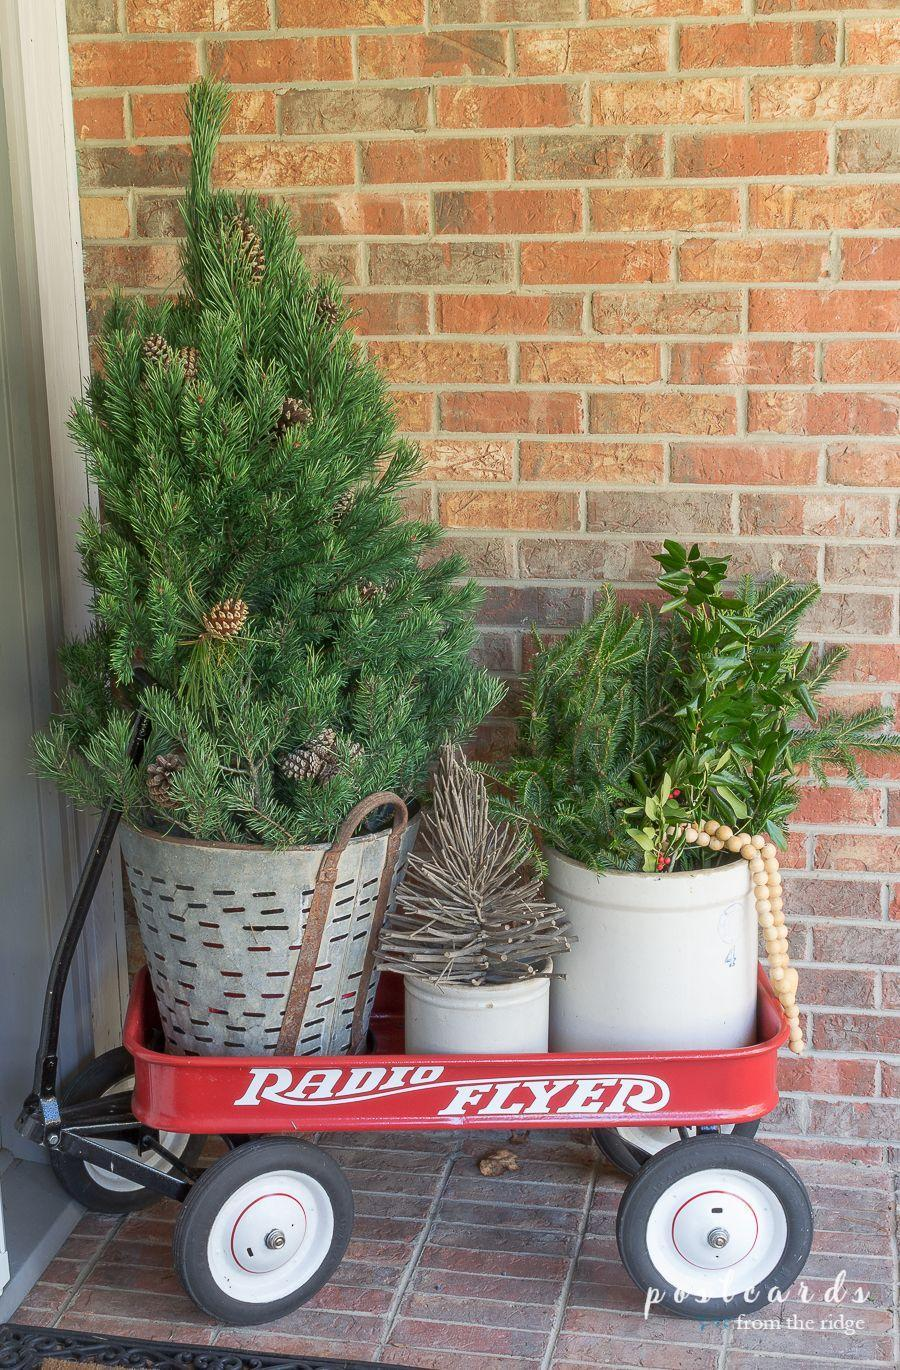 """<p>An iconic red wagon transforms into a perfect piece of holiday porch decor: Use it as a planter, a basket for accessories — whatever you can dream up.<br></p><p><strong><em>Get the tutorial at <a href=""""https://www.postcardsfromtheridge.com/2017/11/cozy-christmas-front-porch.html"""" rel=""""nofollow noopener"""" target=""""_blank"""" data-ylk=""""slk:Postcards from the Ridge"""" class=""""link rapid-noclick-resp"""">Postcards from the Ridge</a>.</em></strong></p>"""